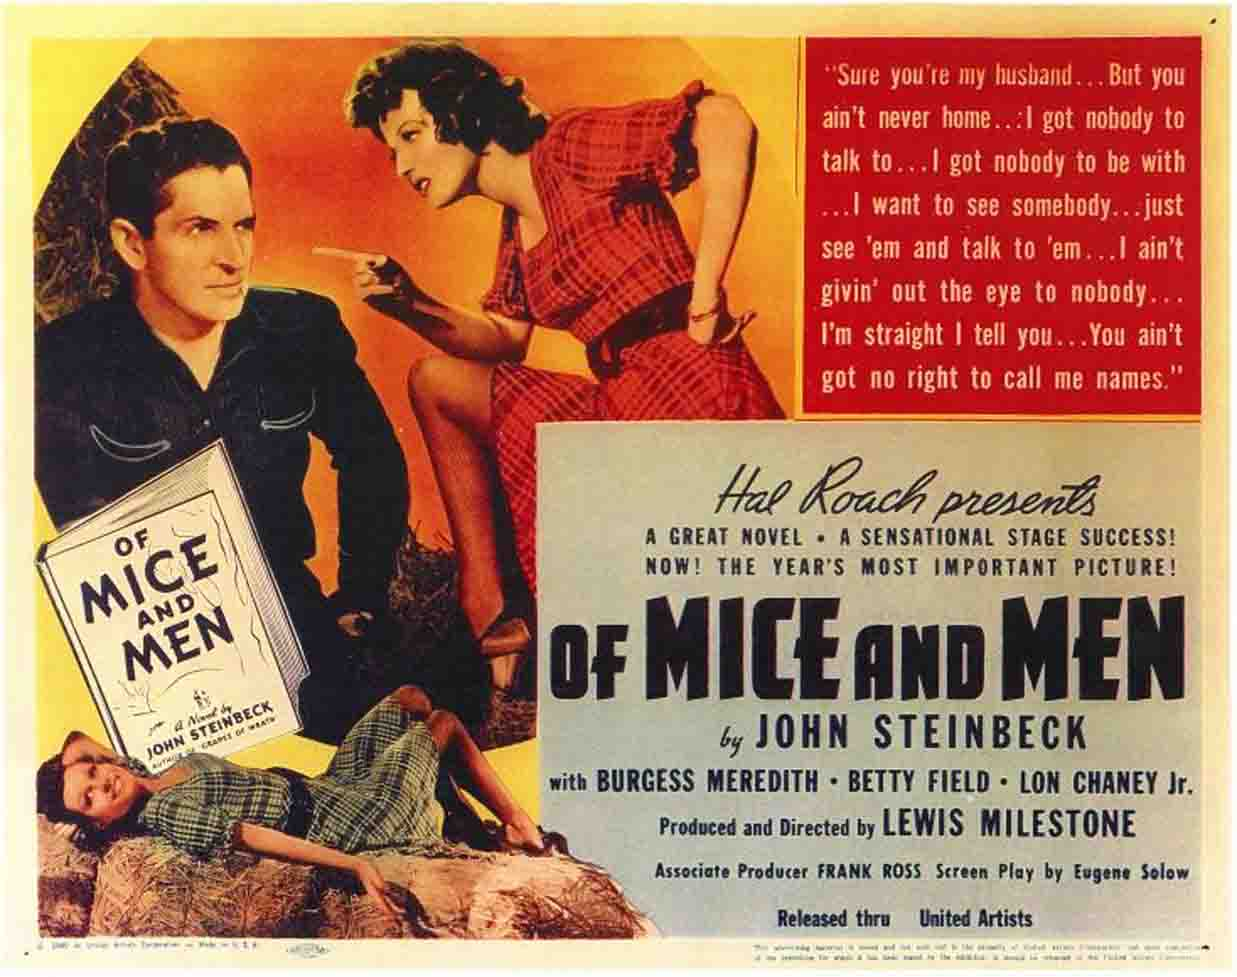 Una Pagina de Cine 1939 Of mice and men - La fuerza bruta ...